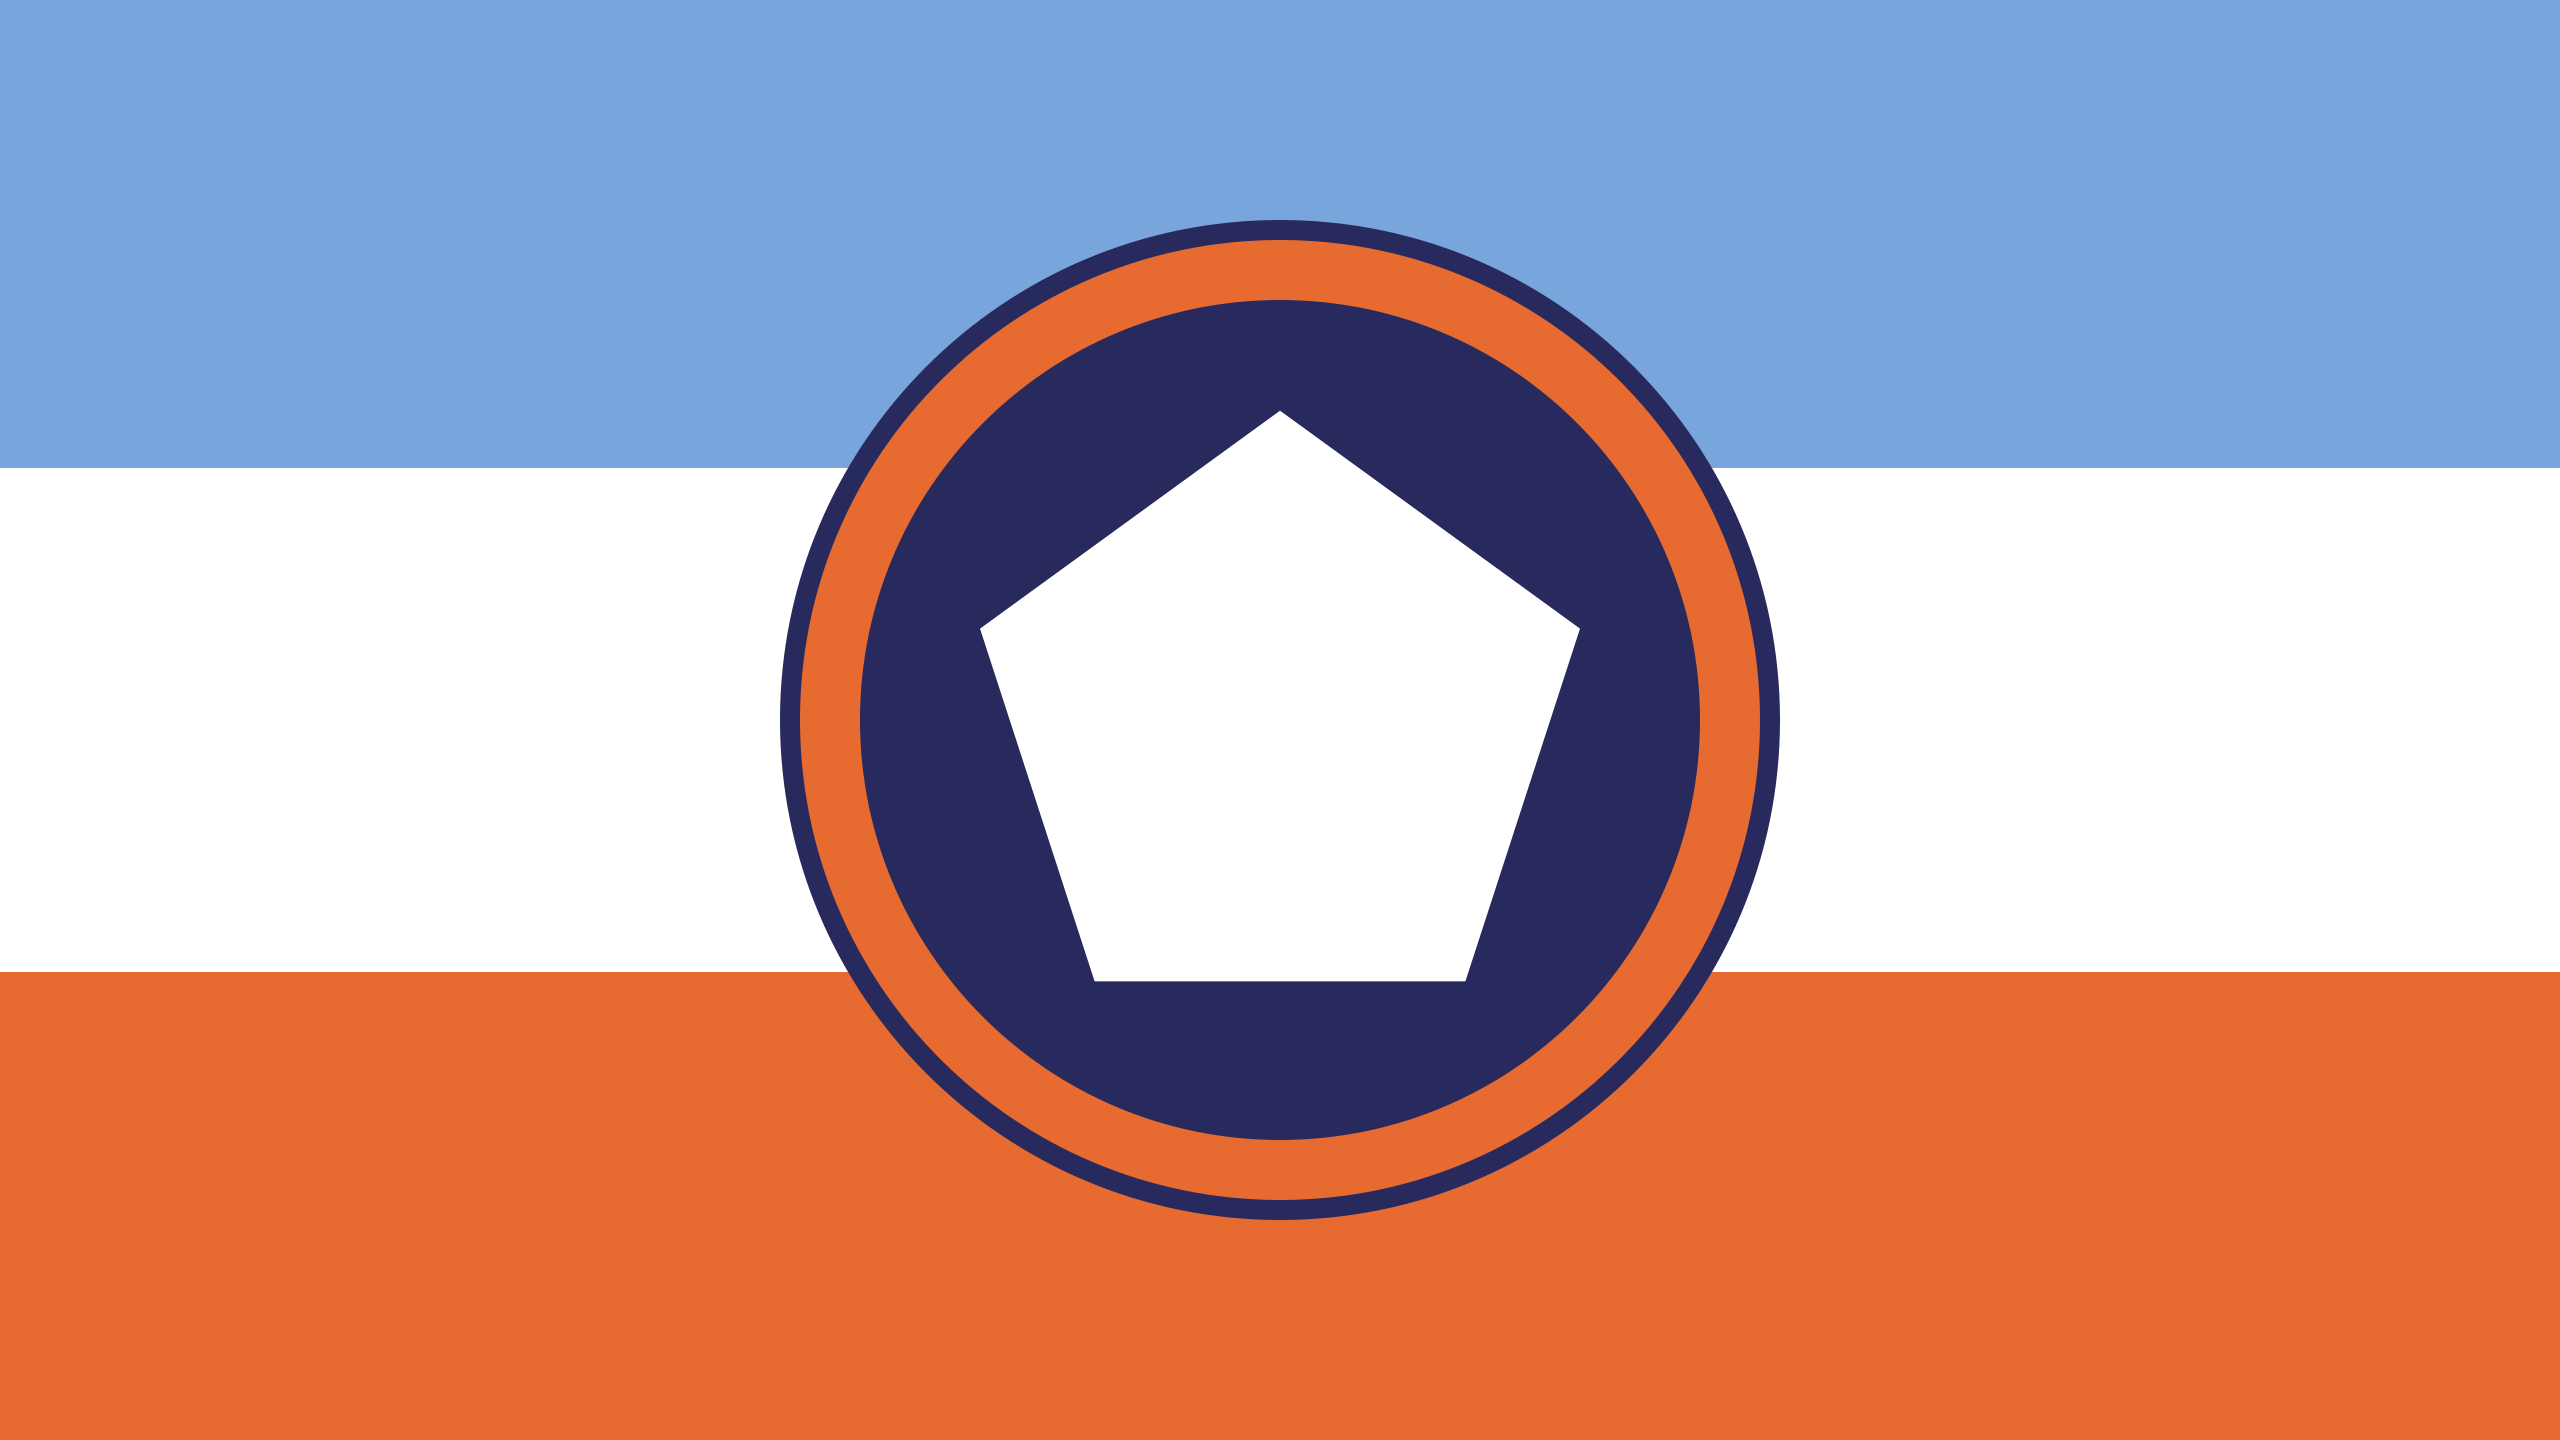 Flags project types john michael lenard nycfc alt 1 biocorpaavc Choice Image